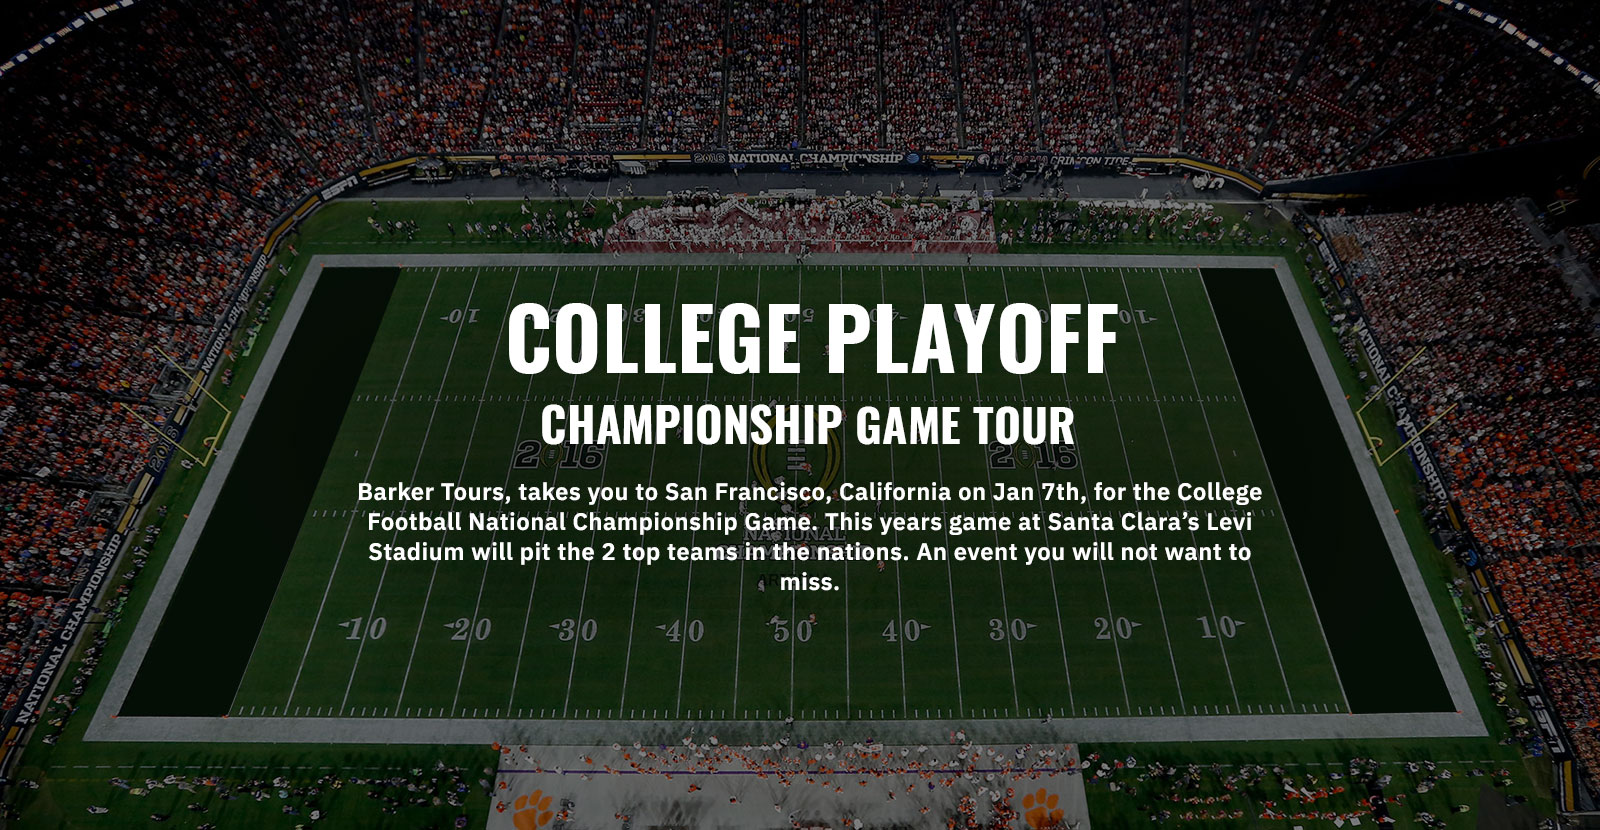 College Bowl Game Tours